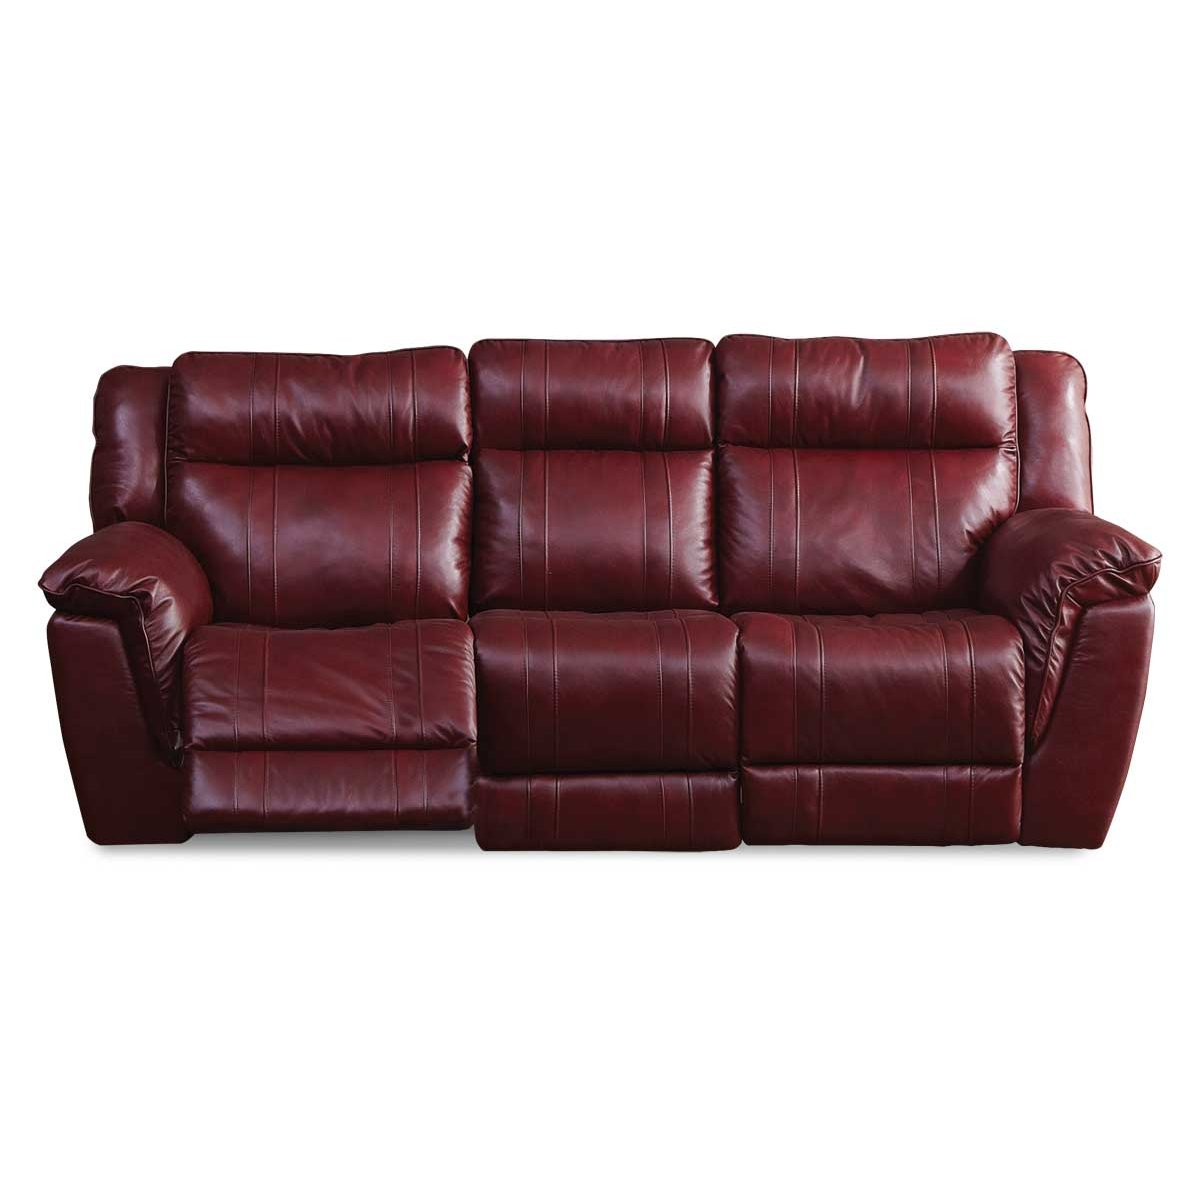 K Motion 89 Red Leather Match Dual Reclining Sofa